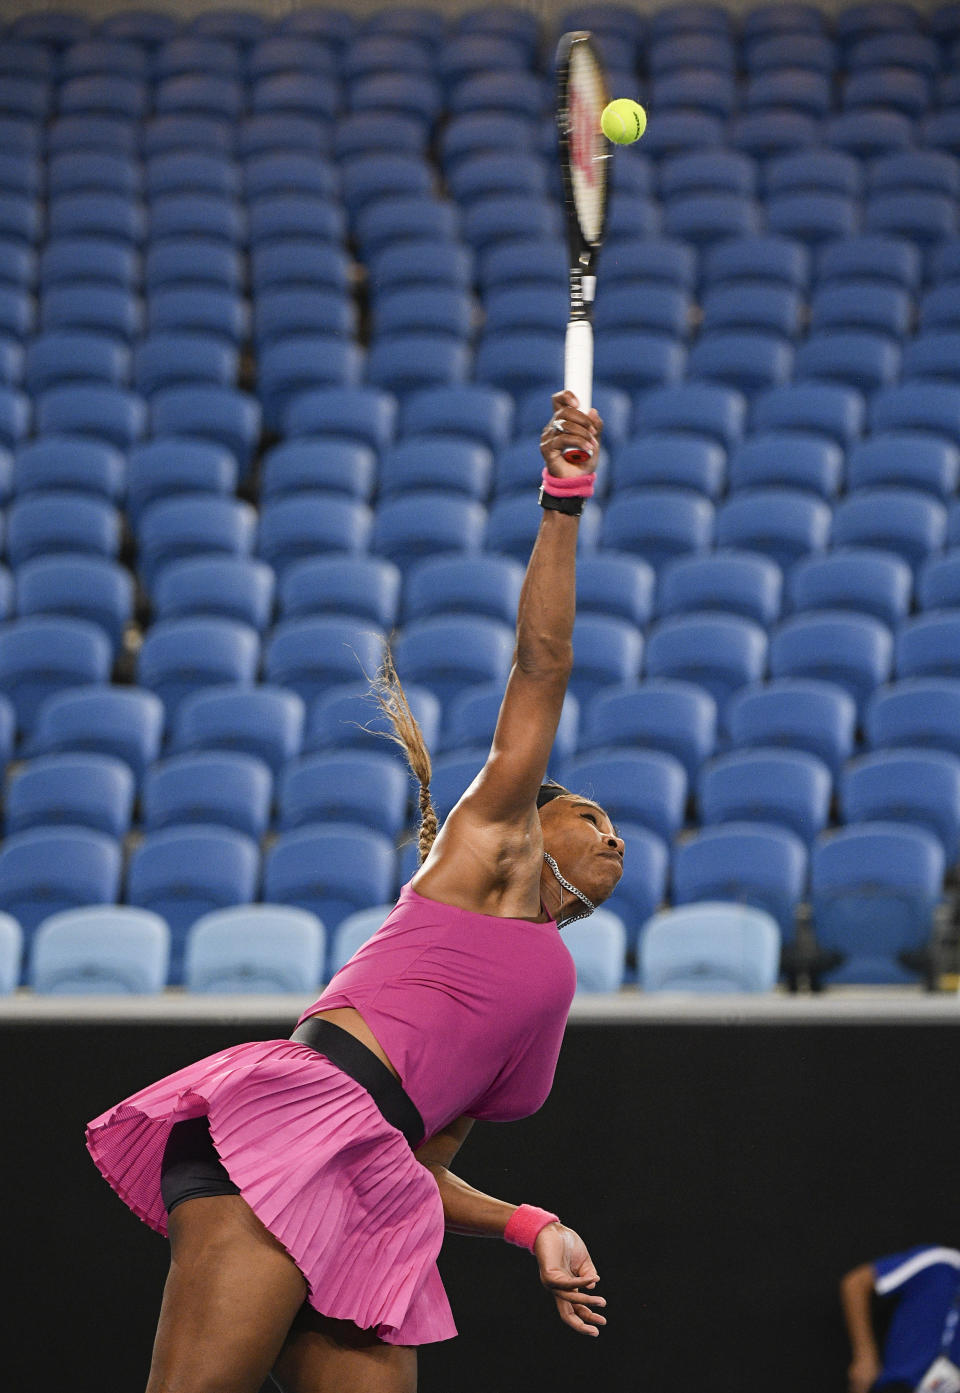 United States' Serena Williams serves to compatriot Danielle Collins during a tuneup event ahead of the Australian Open tennis championships in Melbourne, Australia, Friday, Feb. 5, 2021.(AP Photo/Andy Brownbill)